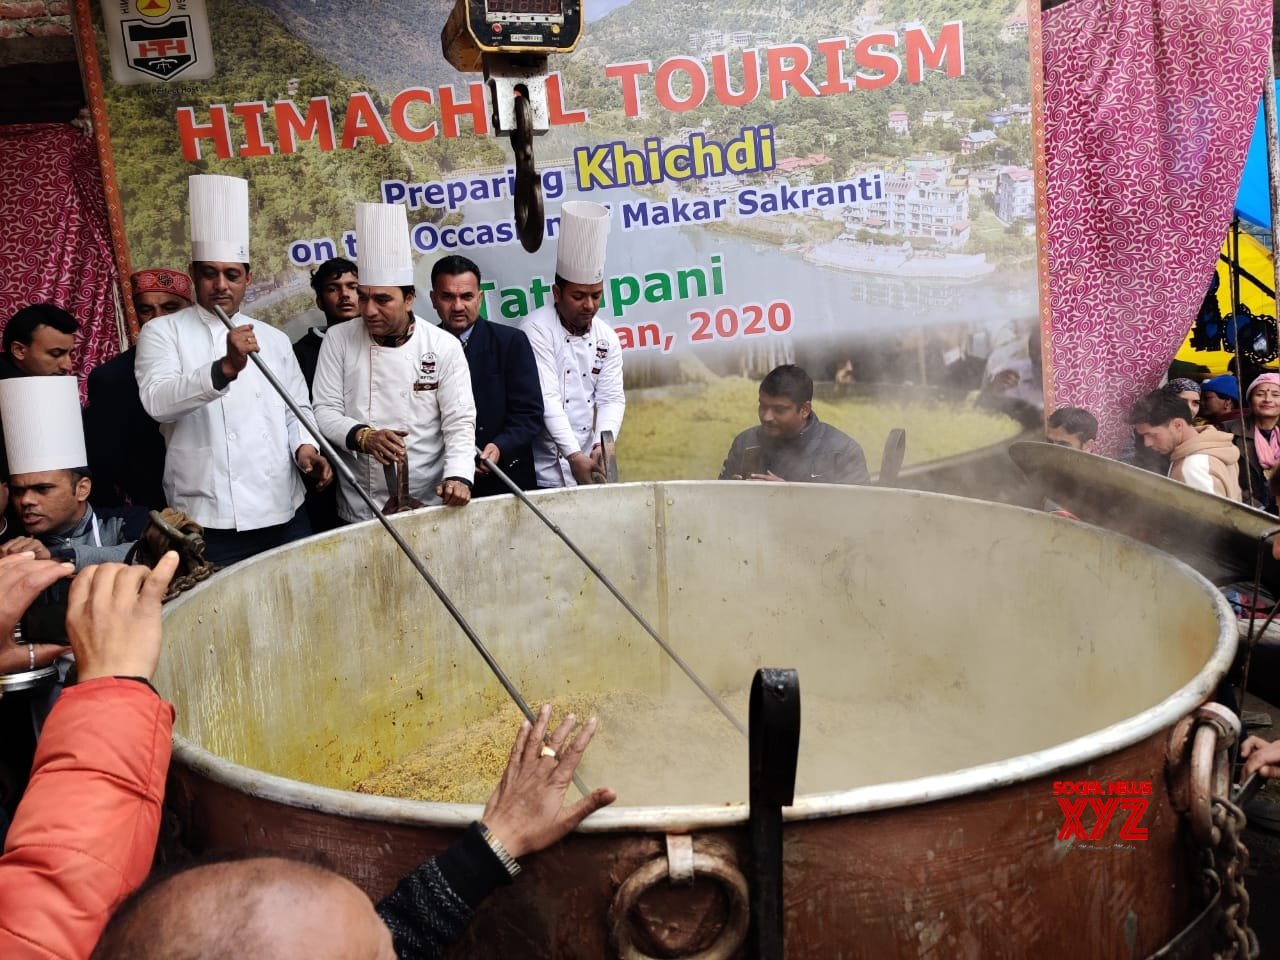 Tattapani: 1,995 kg 'khichdi' cooked in Himachal enters Guinness World Records #Gallery